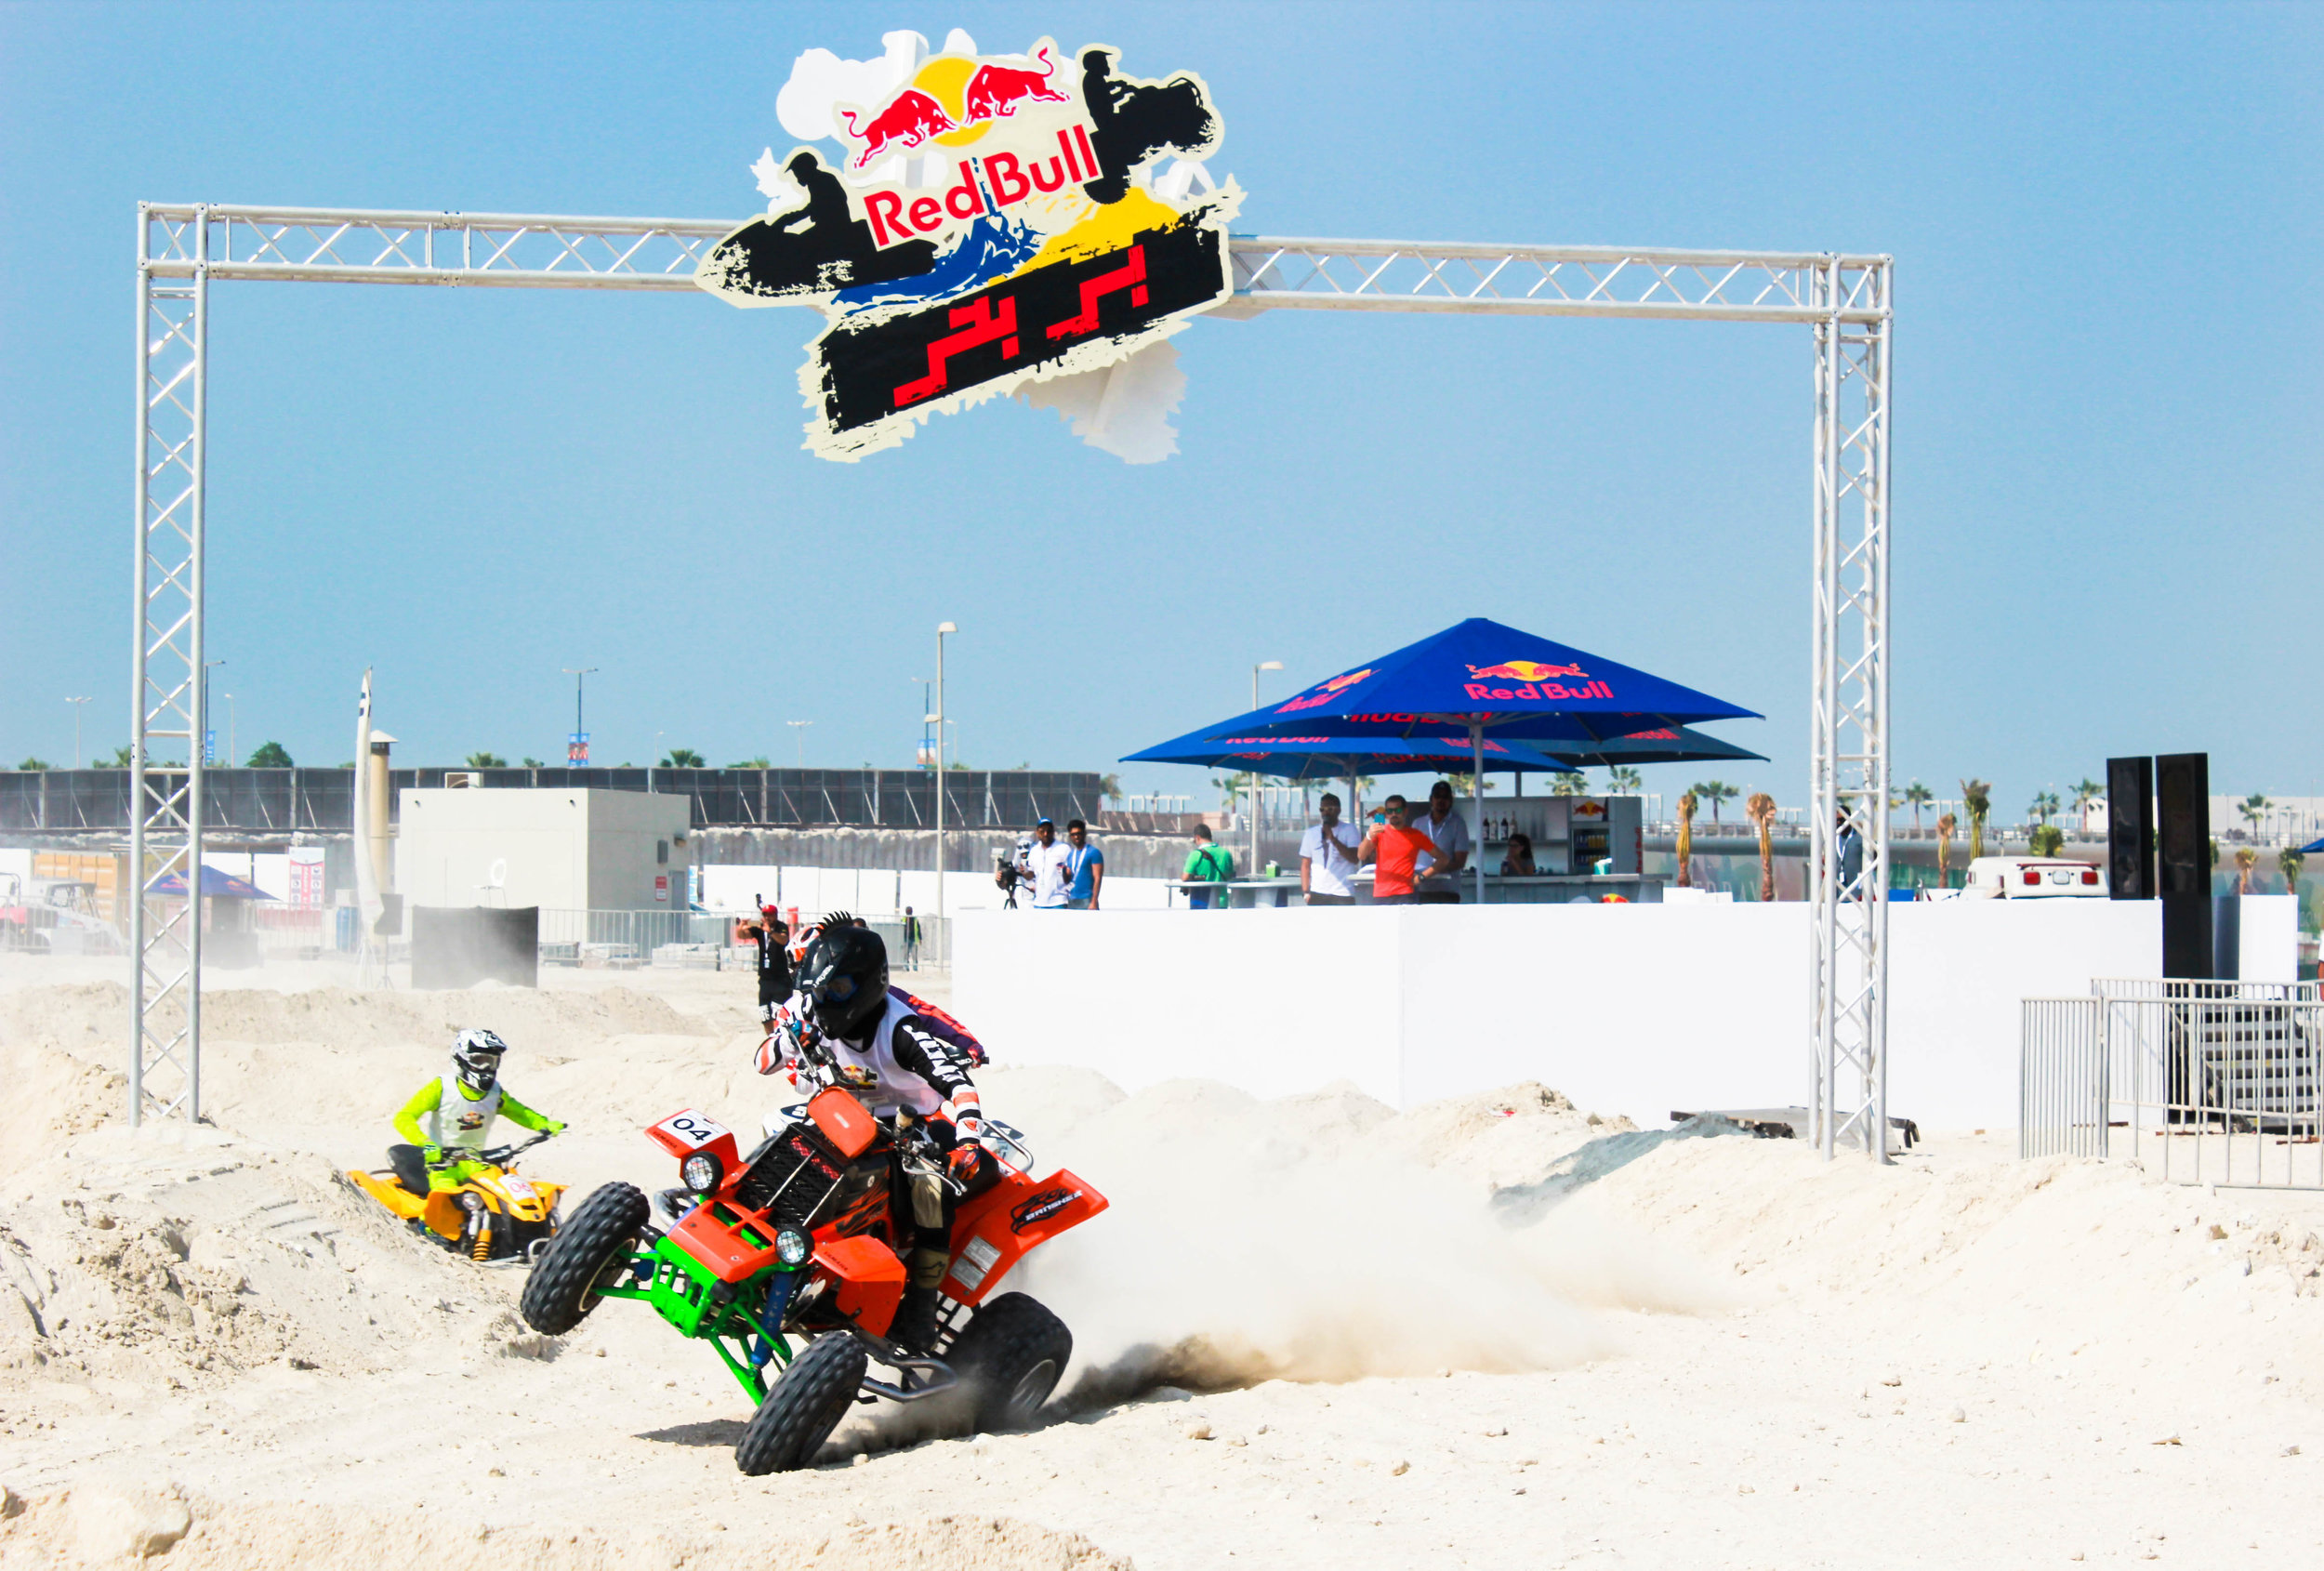 Red Bull Bar Bahr Bahrain Quad Bike.jpg